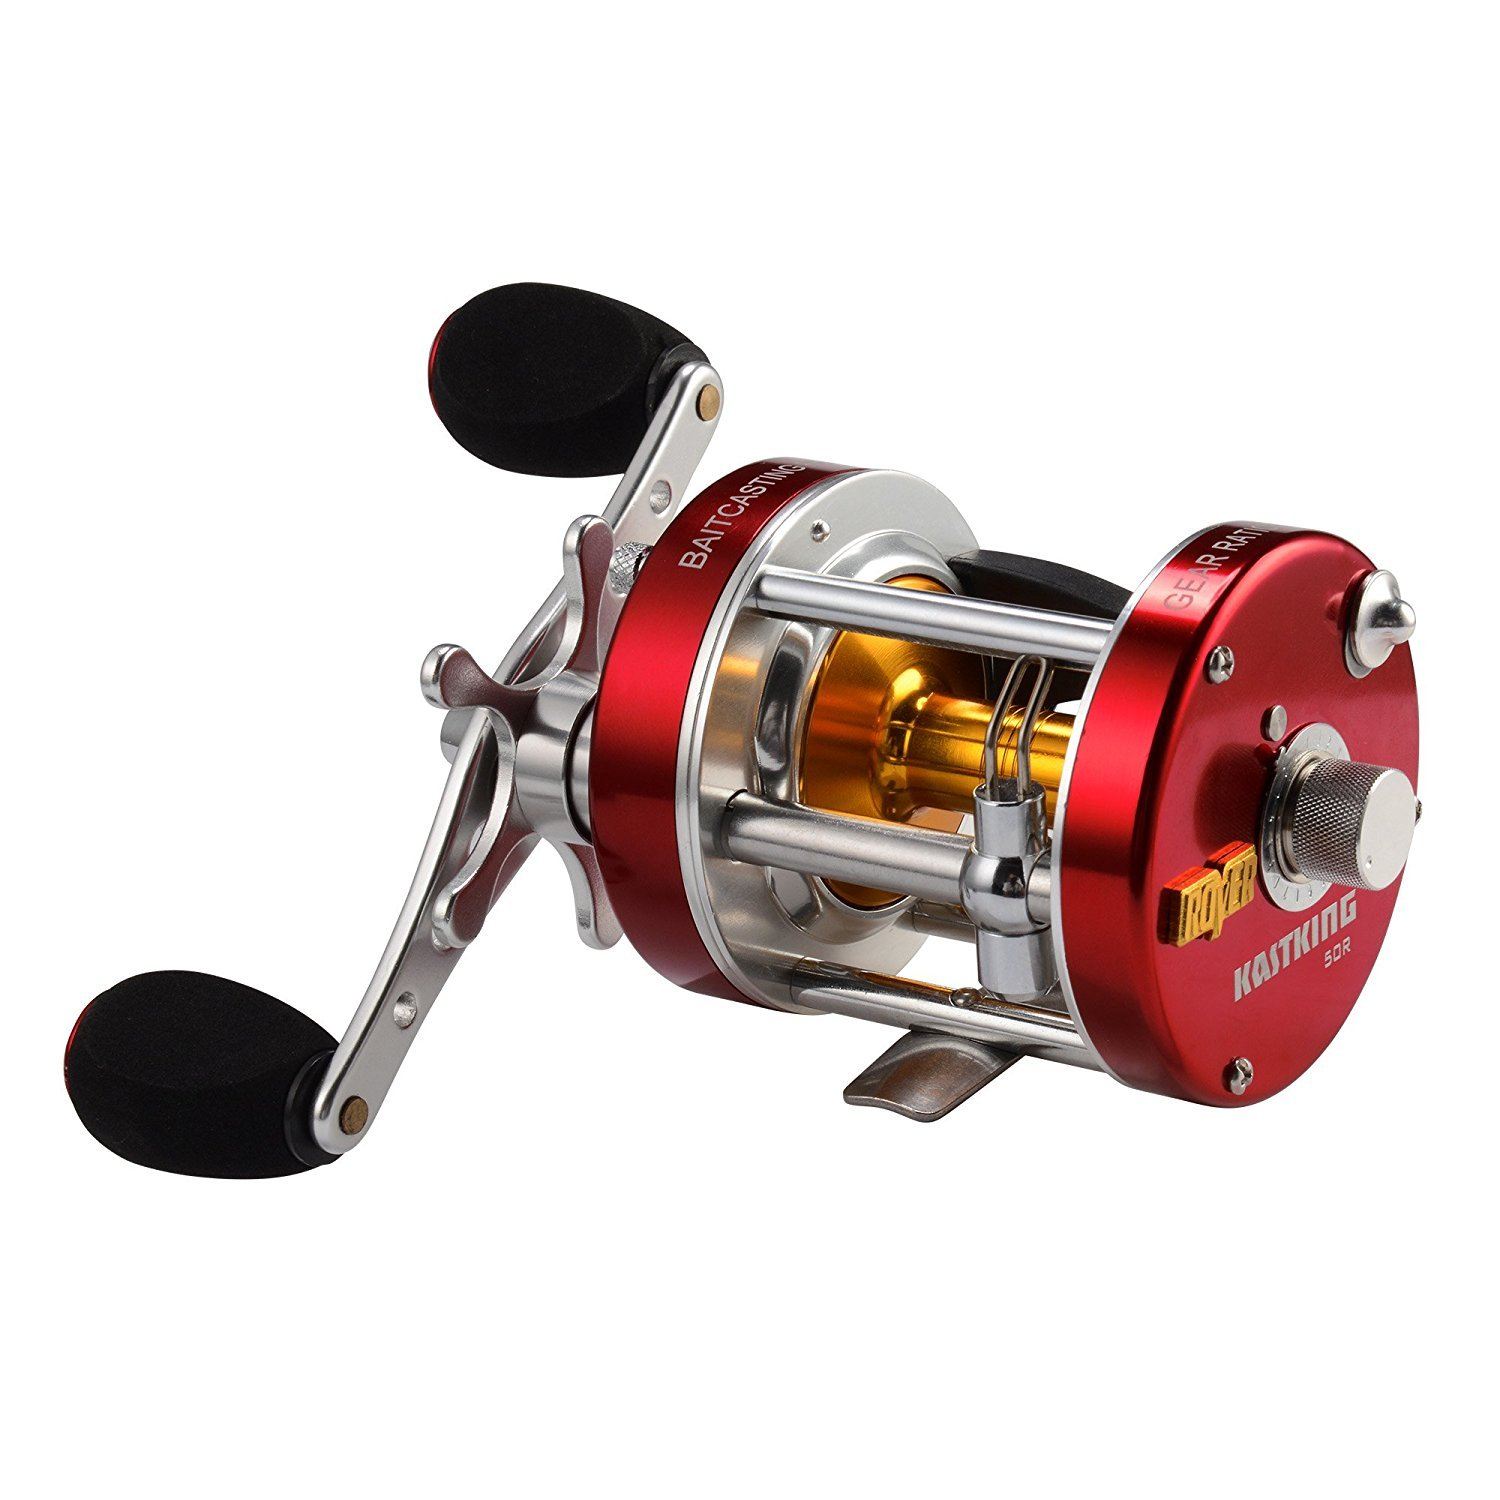 KastKing Rover Round Baitcasting Reel, Right Handed Reel,Rover60 by KastKing (Image #1)